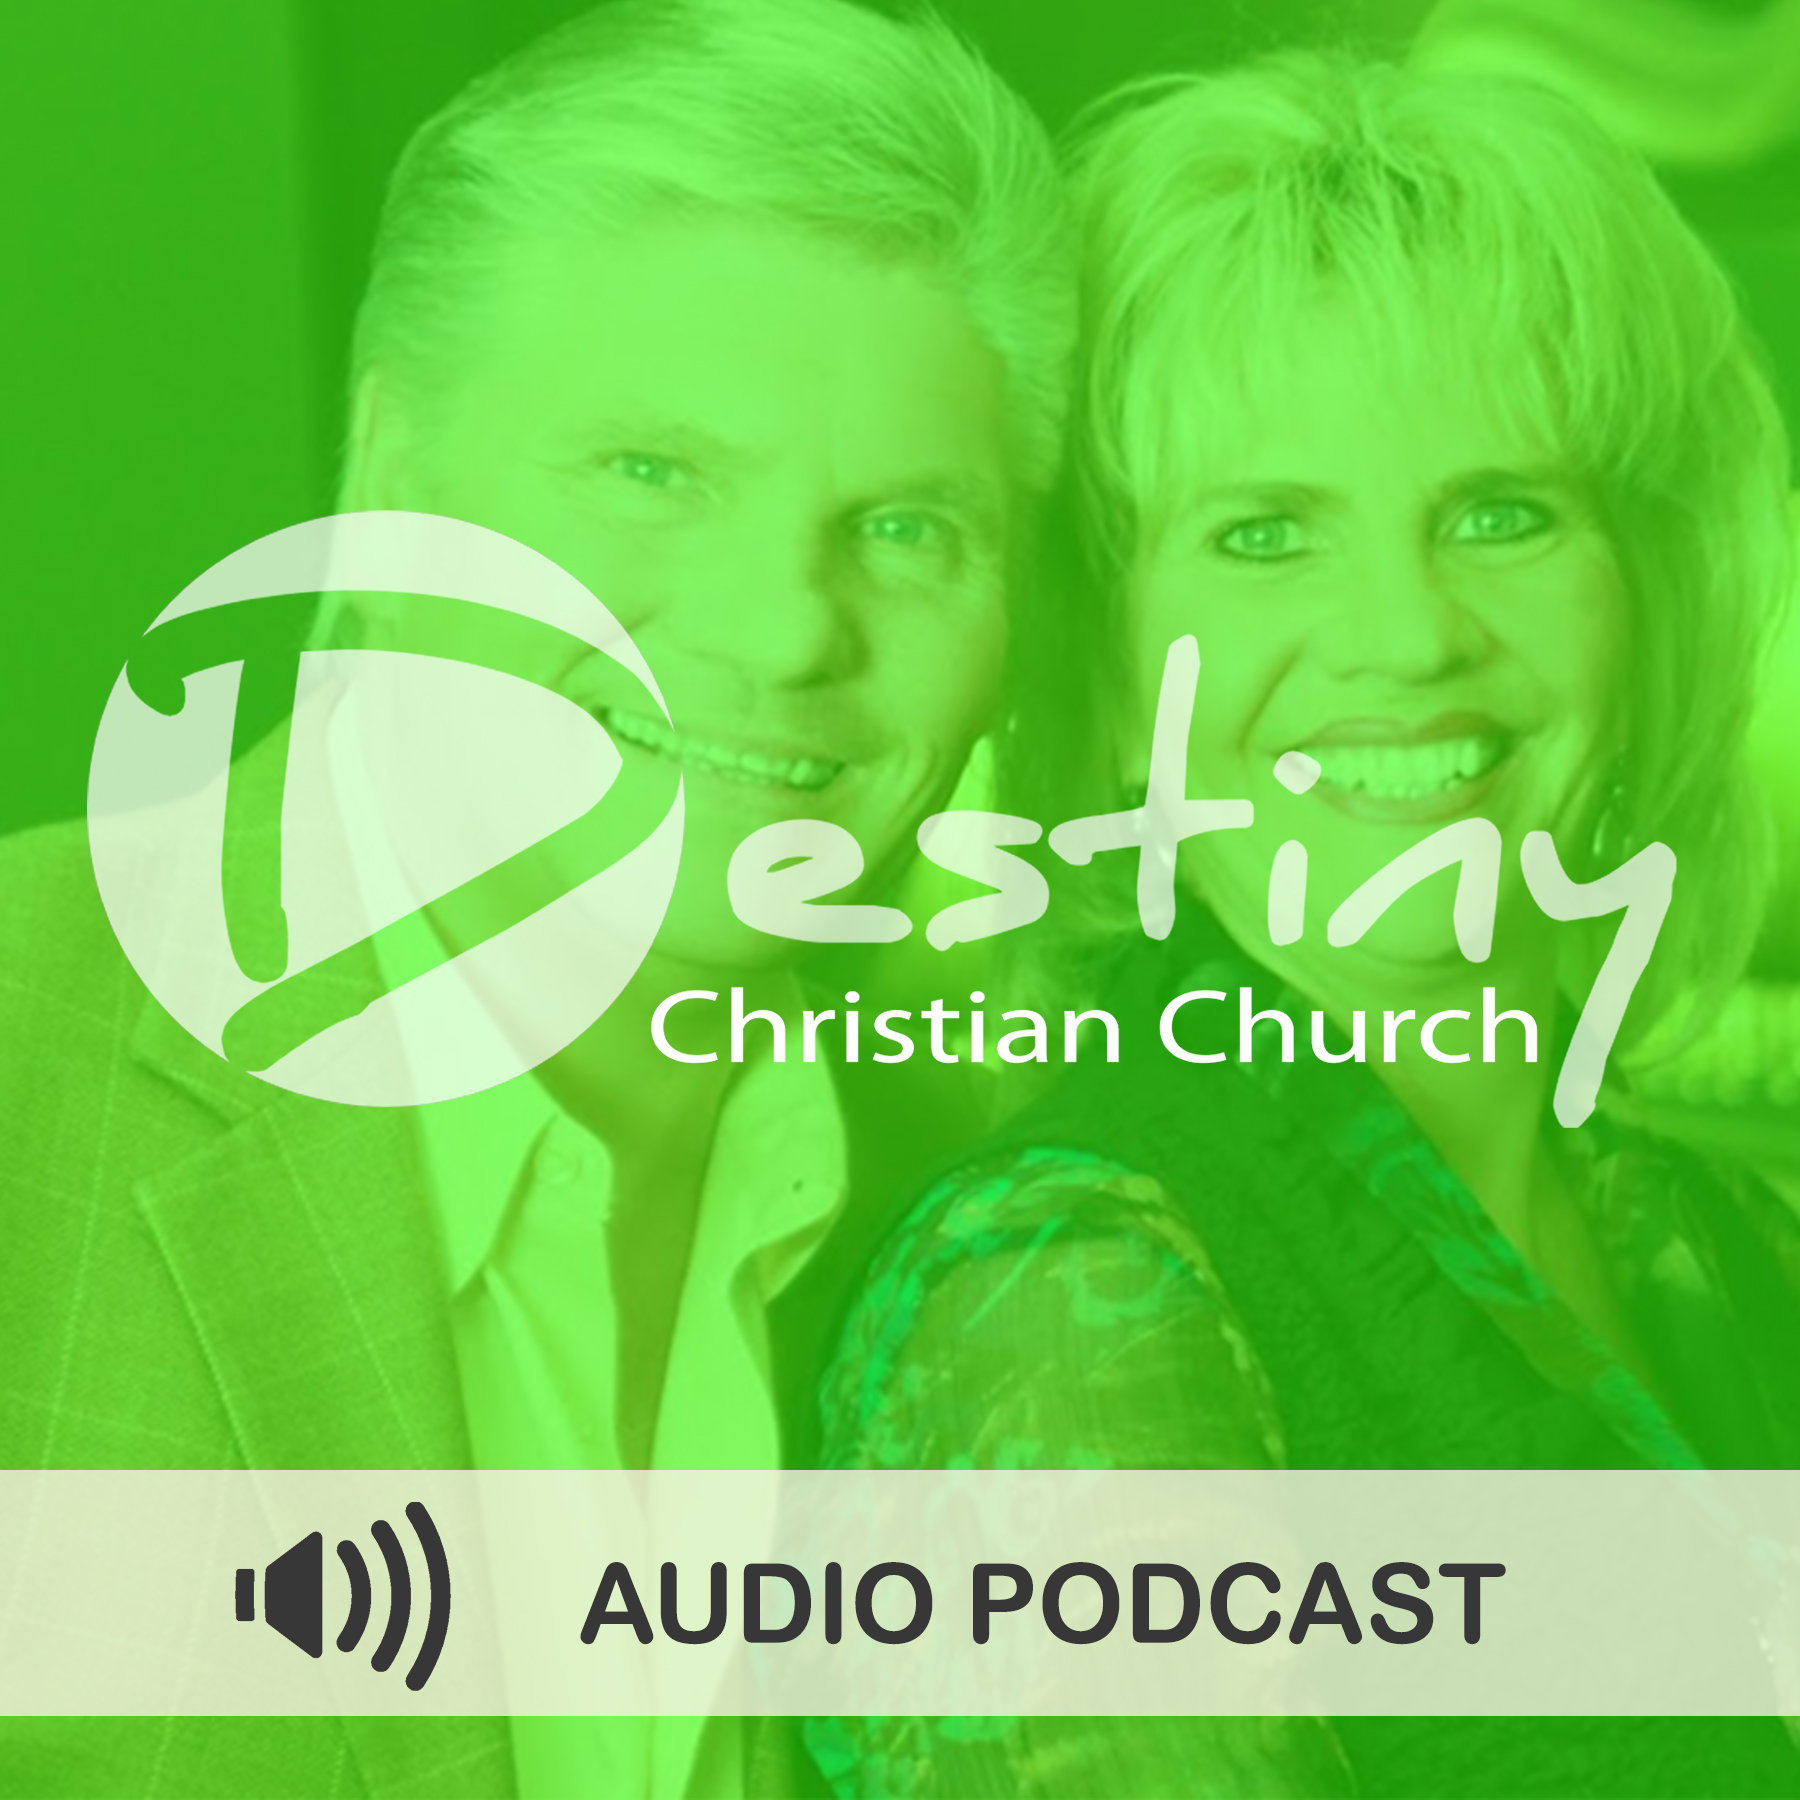 Destiny Christian Church: Pastors Joe & Vicki Braucht Audio